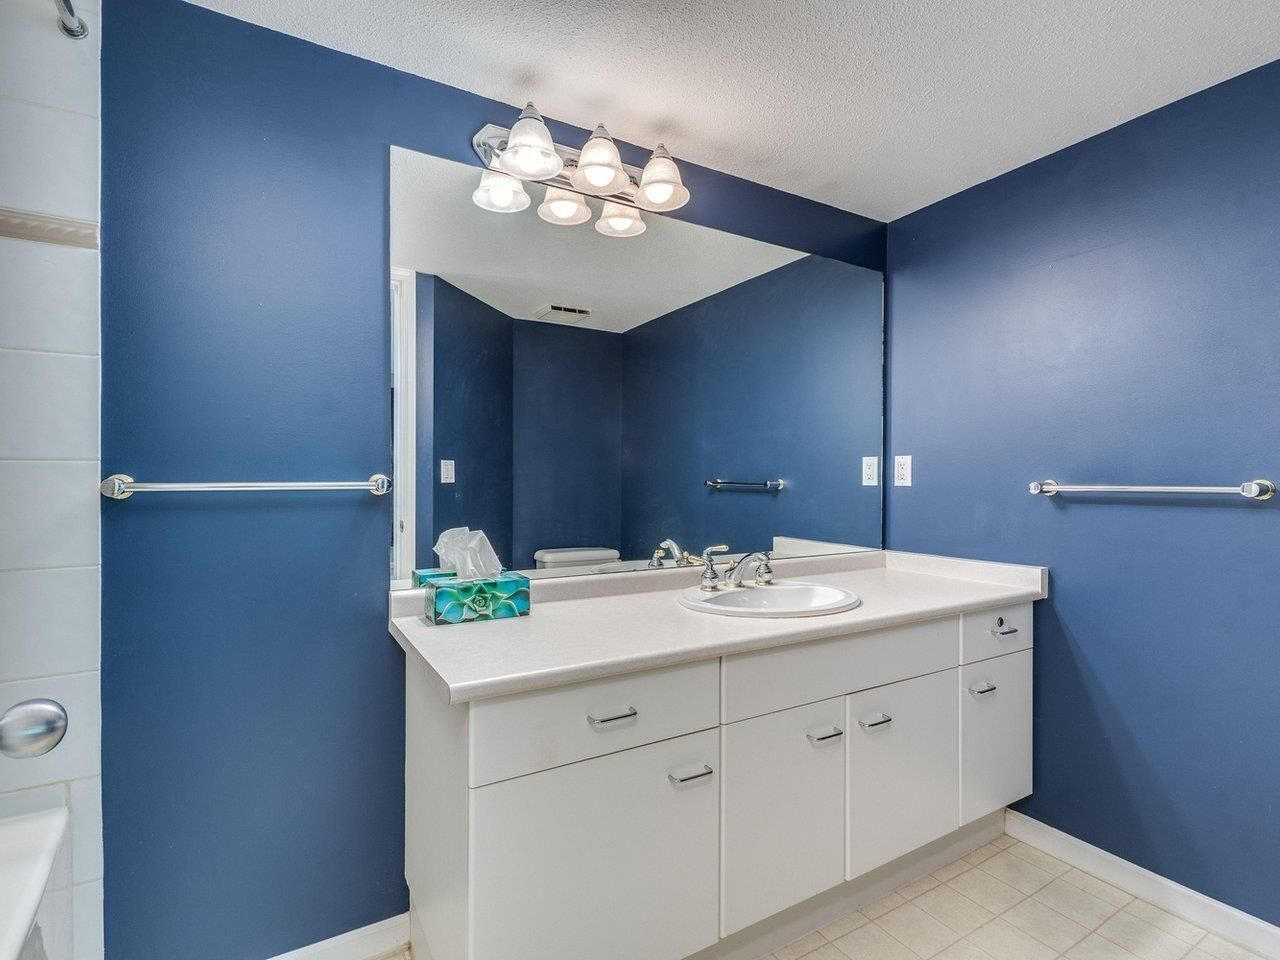 """Photo 24: Photos: 320 1252 TOWN CENTRE Boulevard in Coquitlam: Canyon Springs Condo for sale in """"The Kennedy"""" : MLS®# R2595291"""